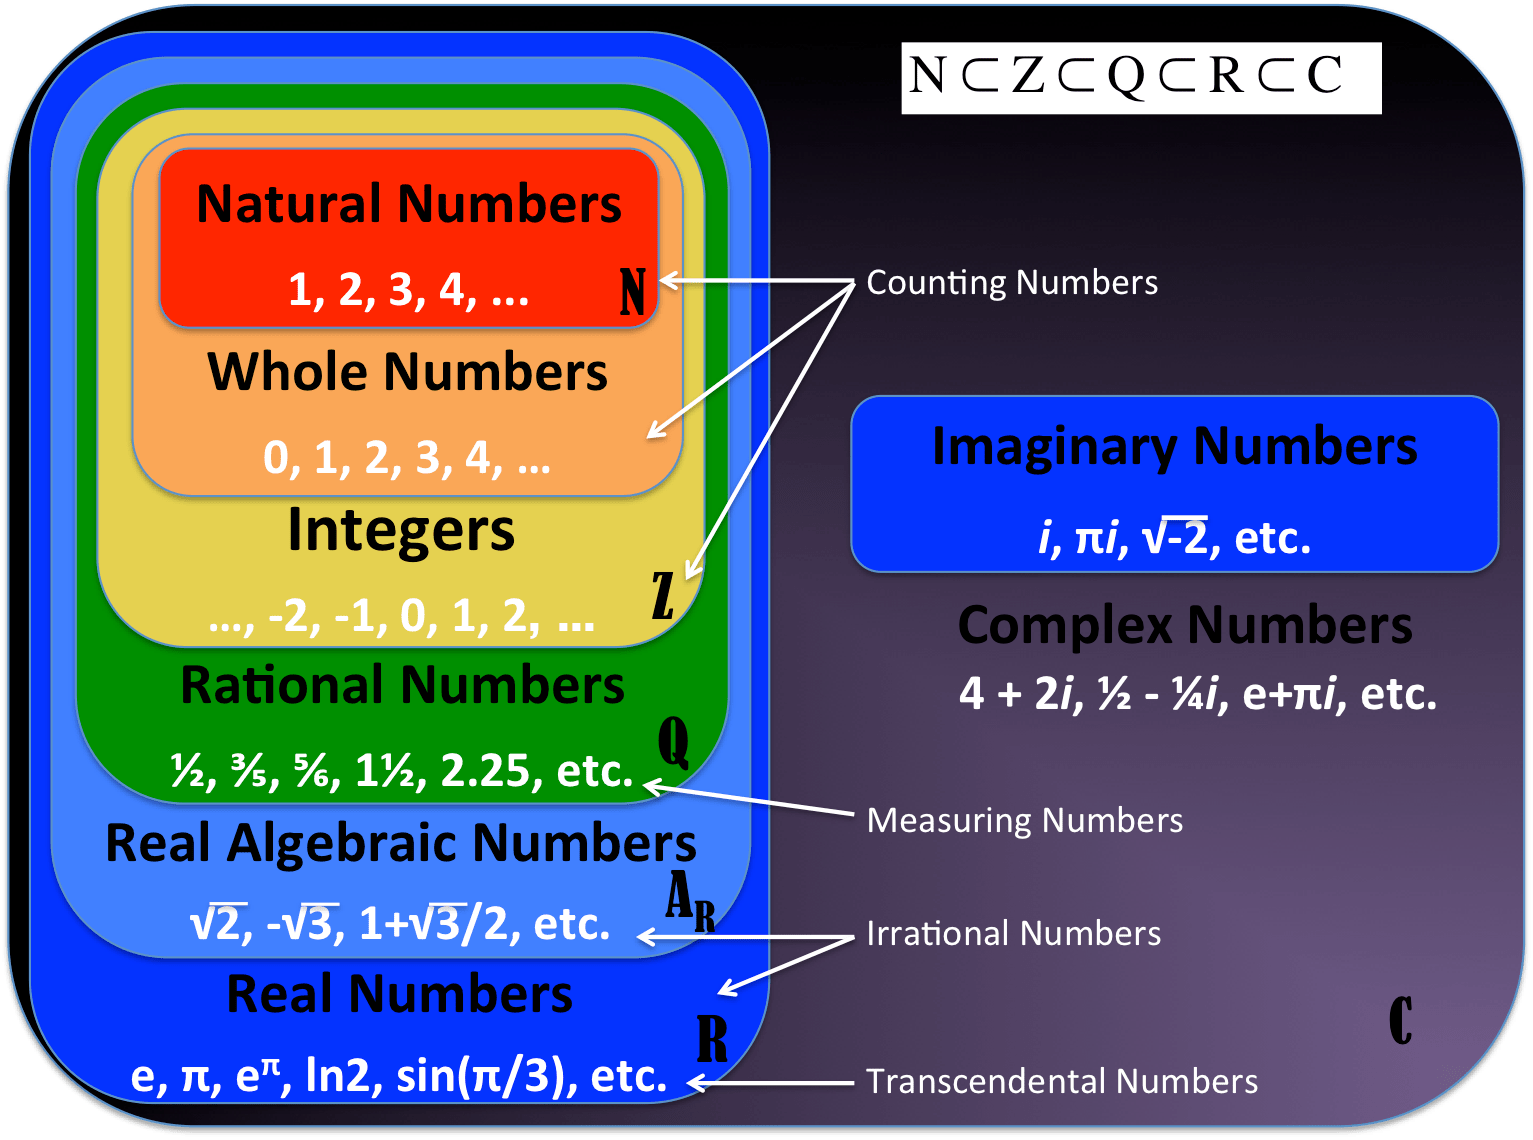 Can A Number Be Non Imaginary And Non Real